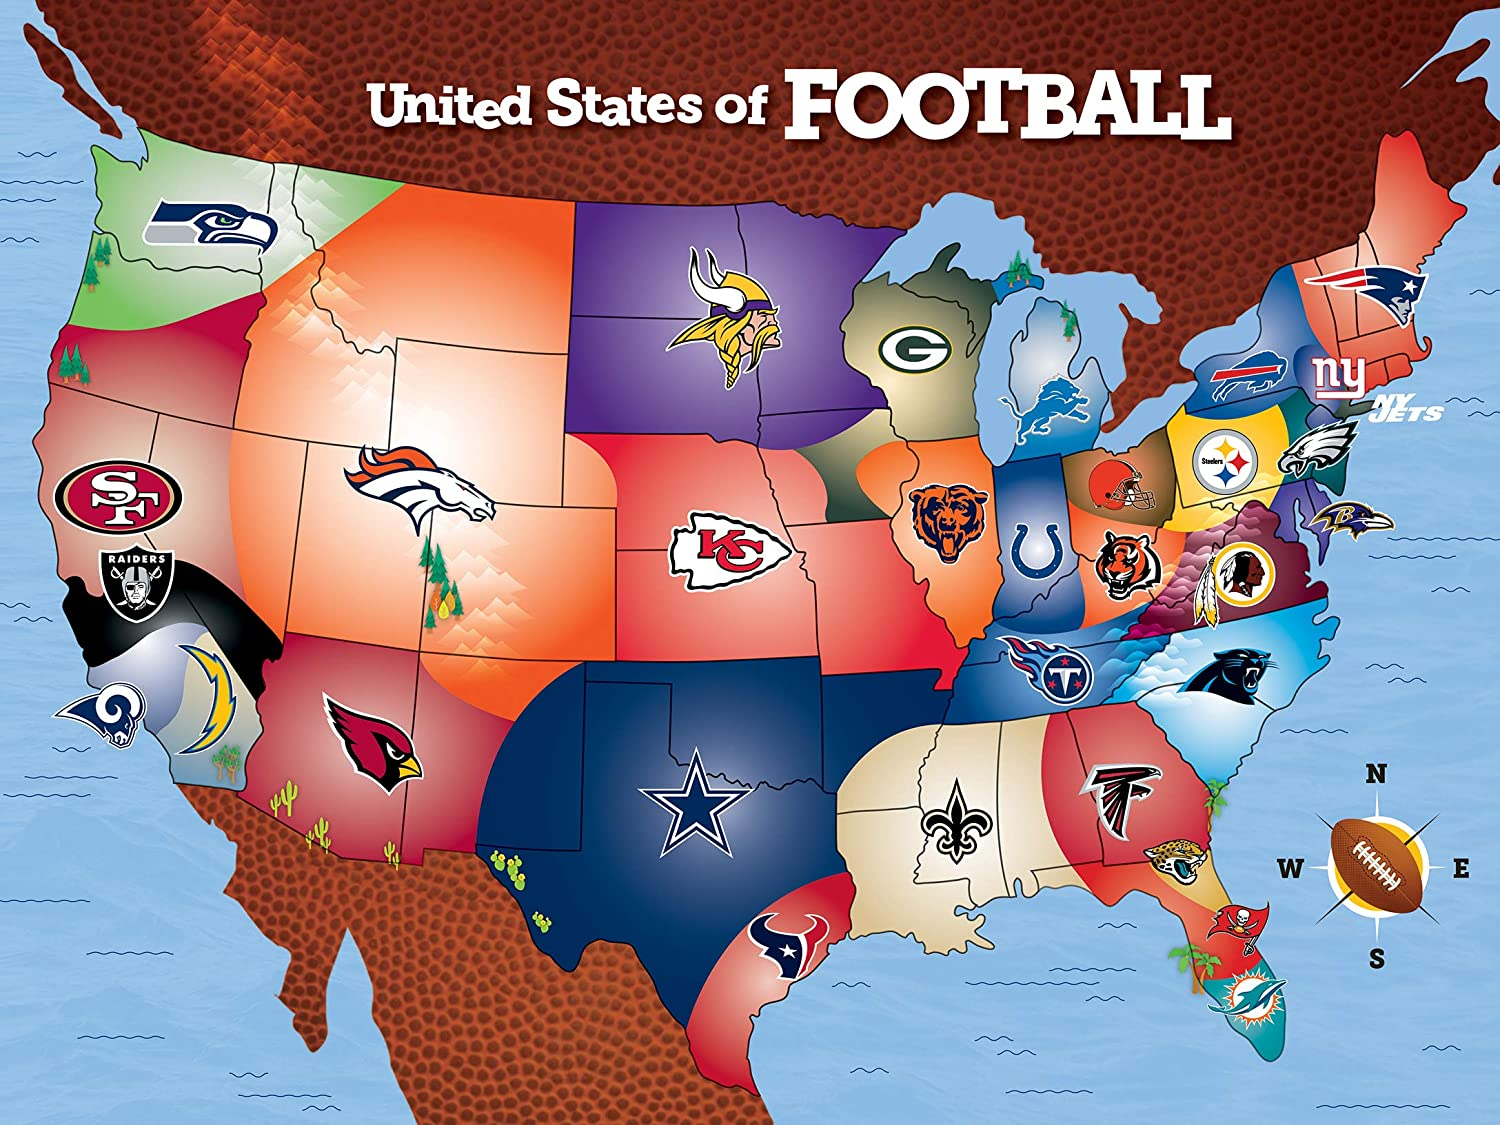 united states map of football teams Amazon.com: MasterPieces NFL USA Map Jigsaw Puzzle, United States